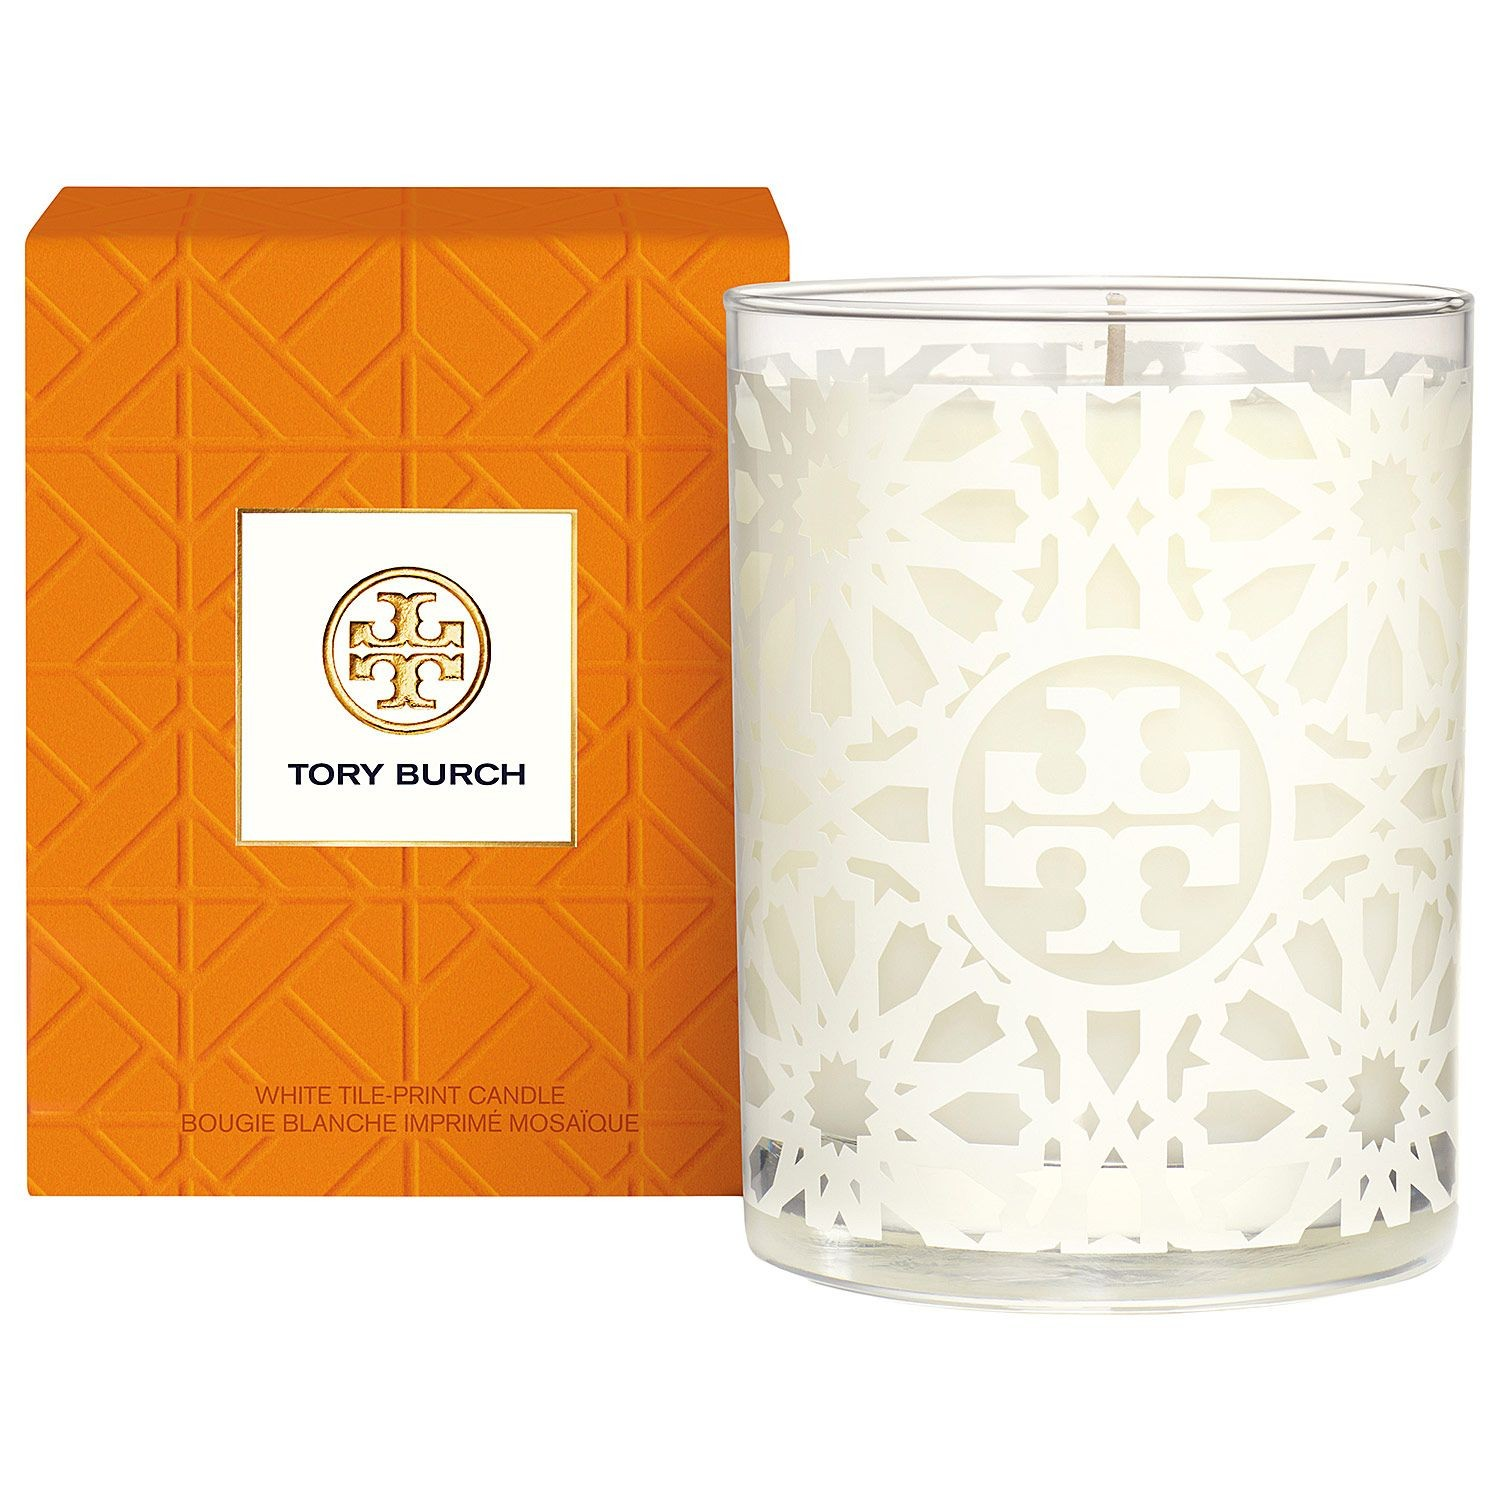 Tory Burch Candle